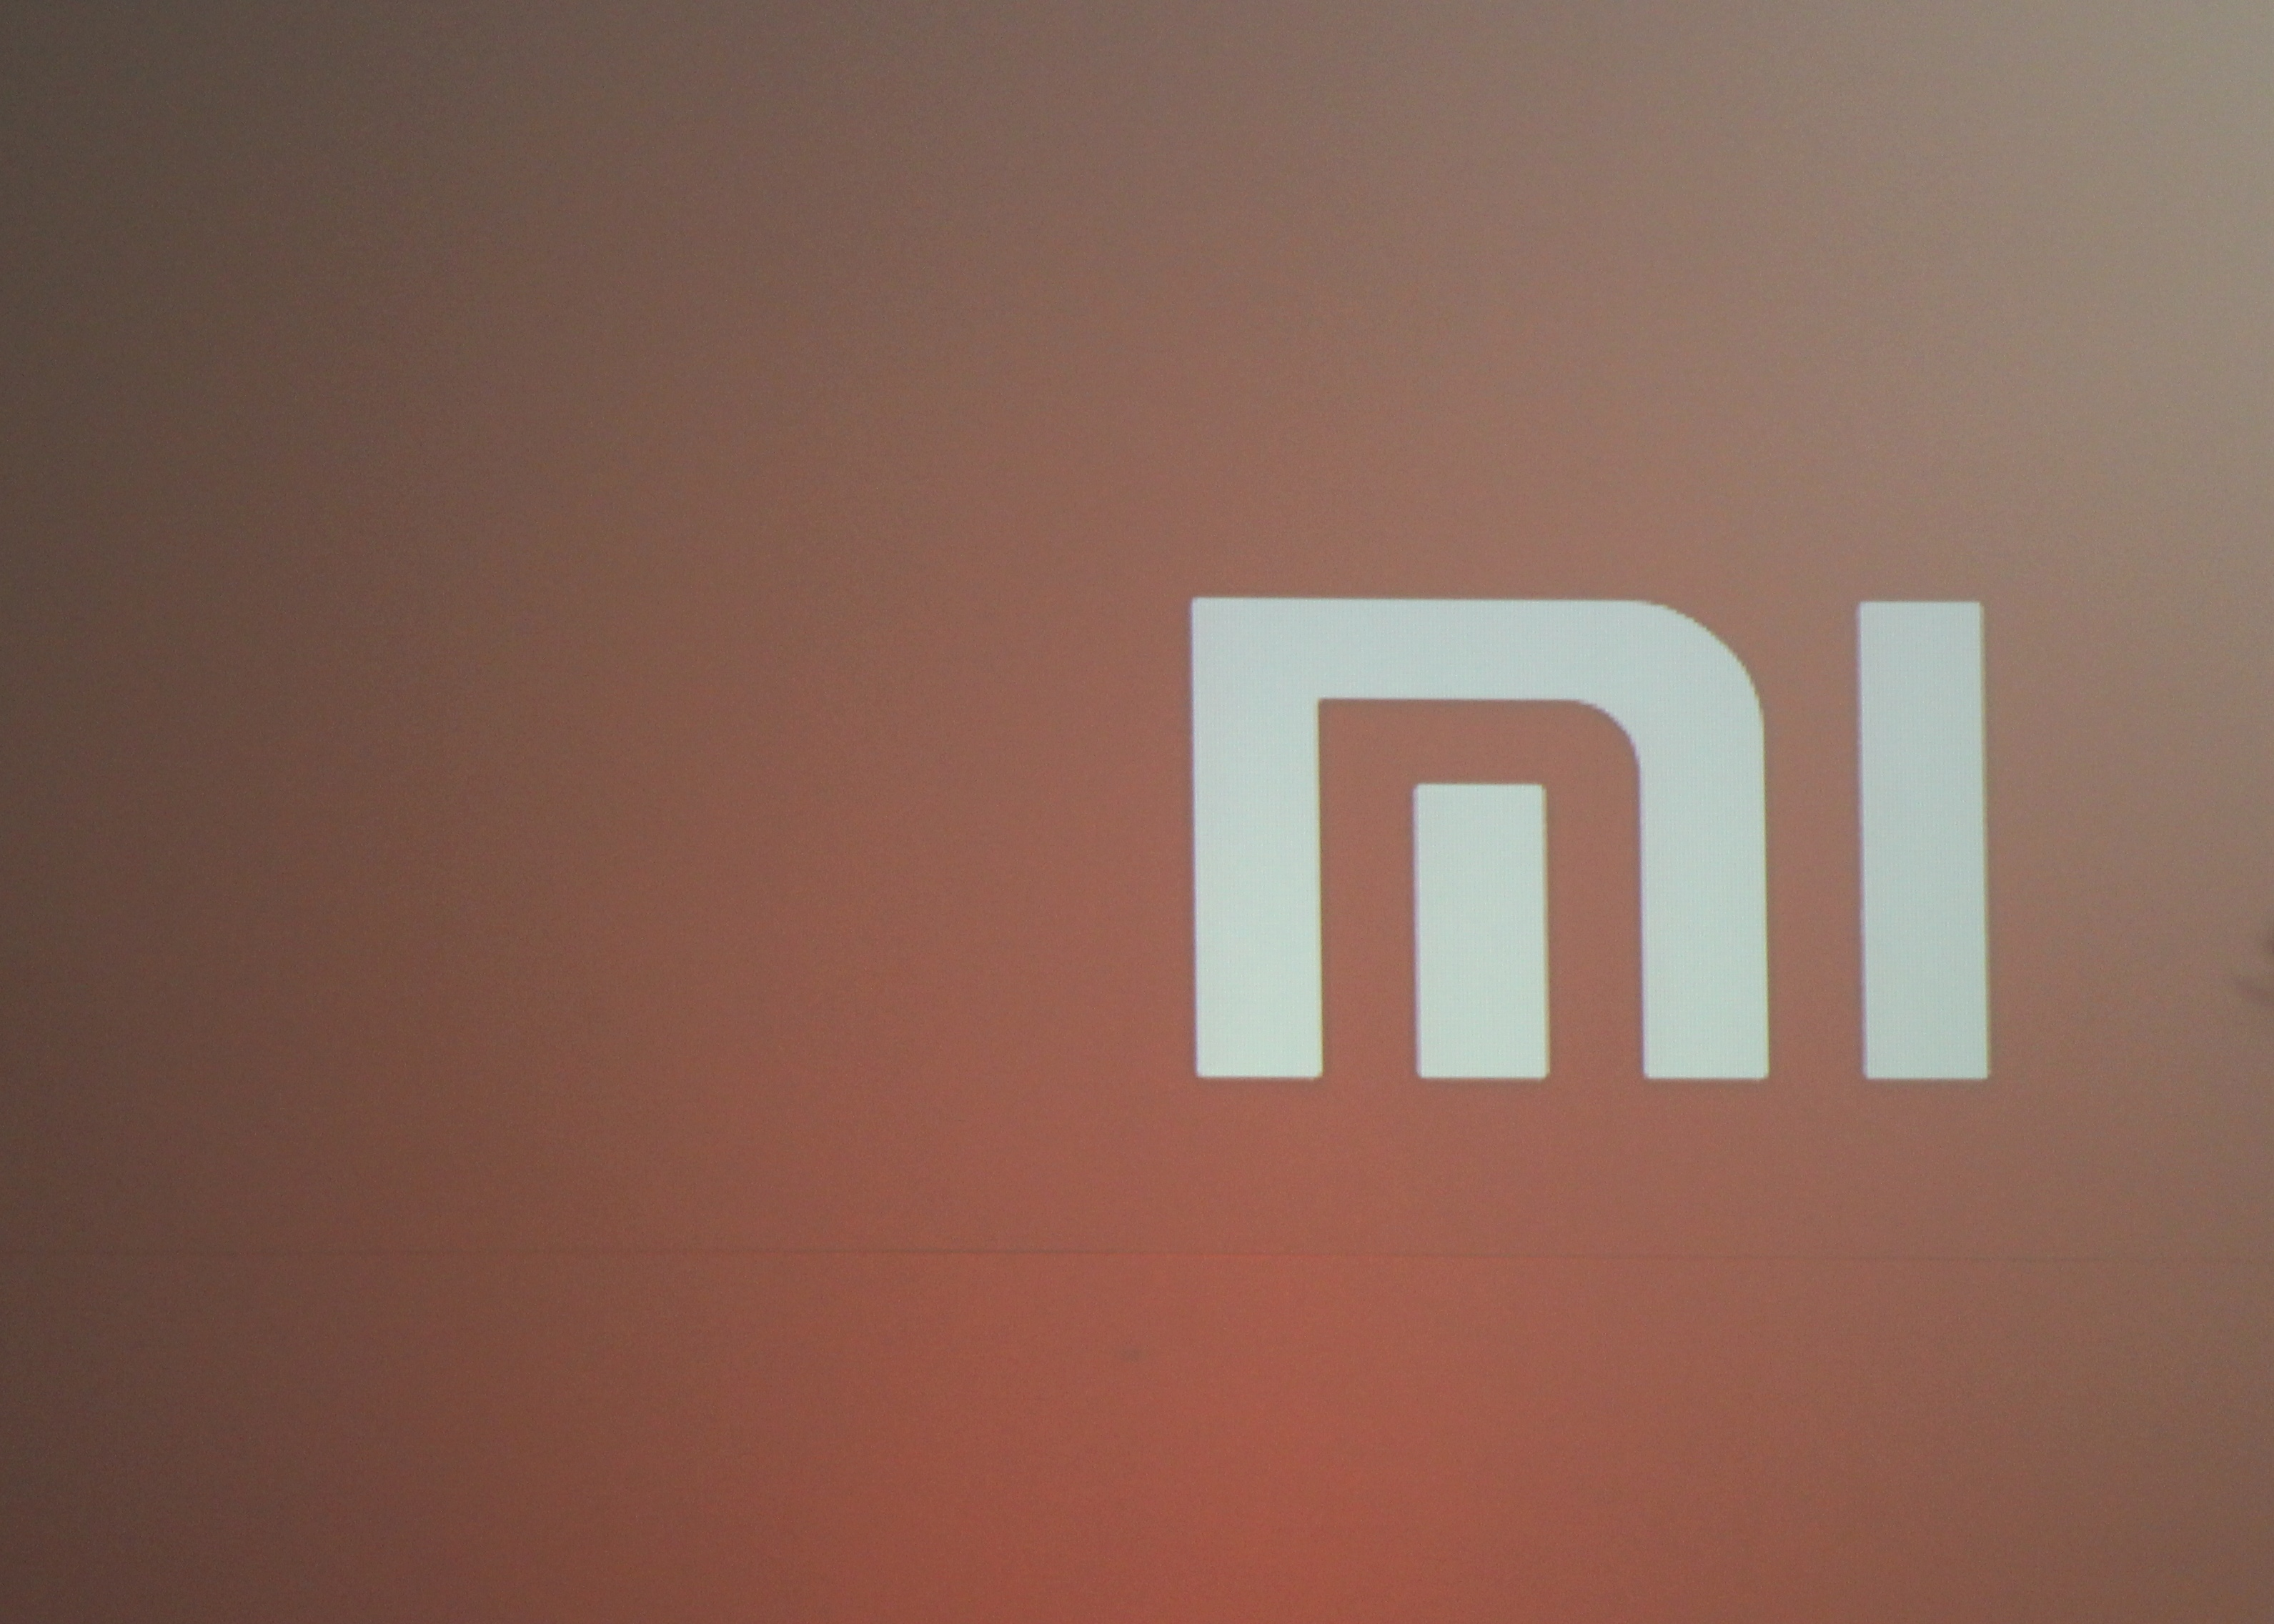 Xiaomi 4k Logo 3182x2273 Download Hd Wallpaper Wallpapertip